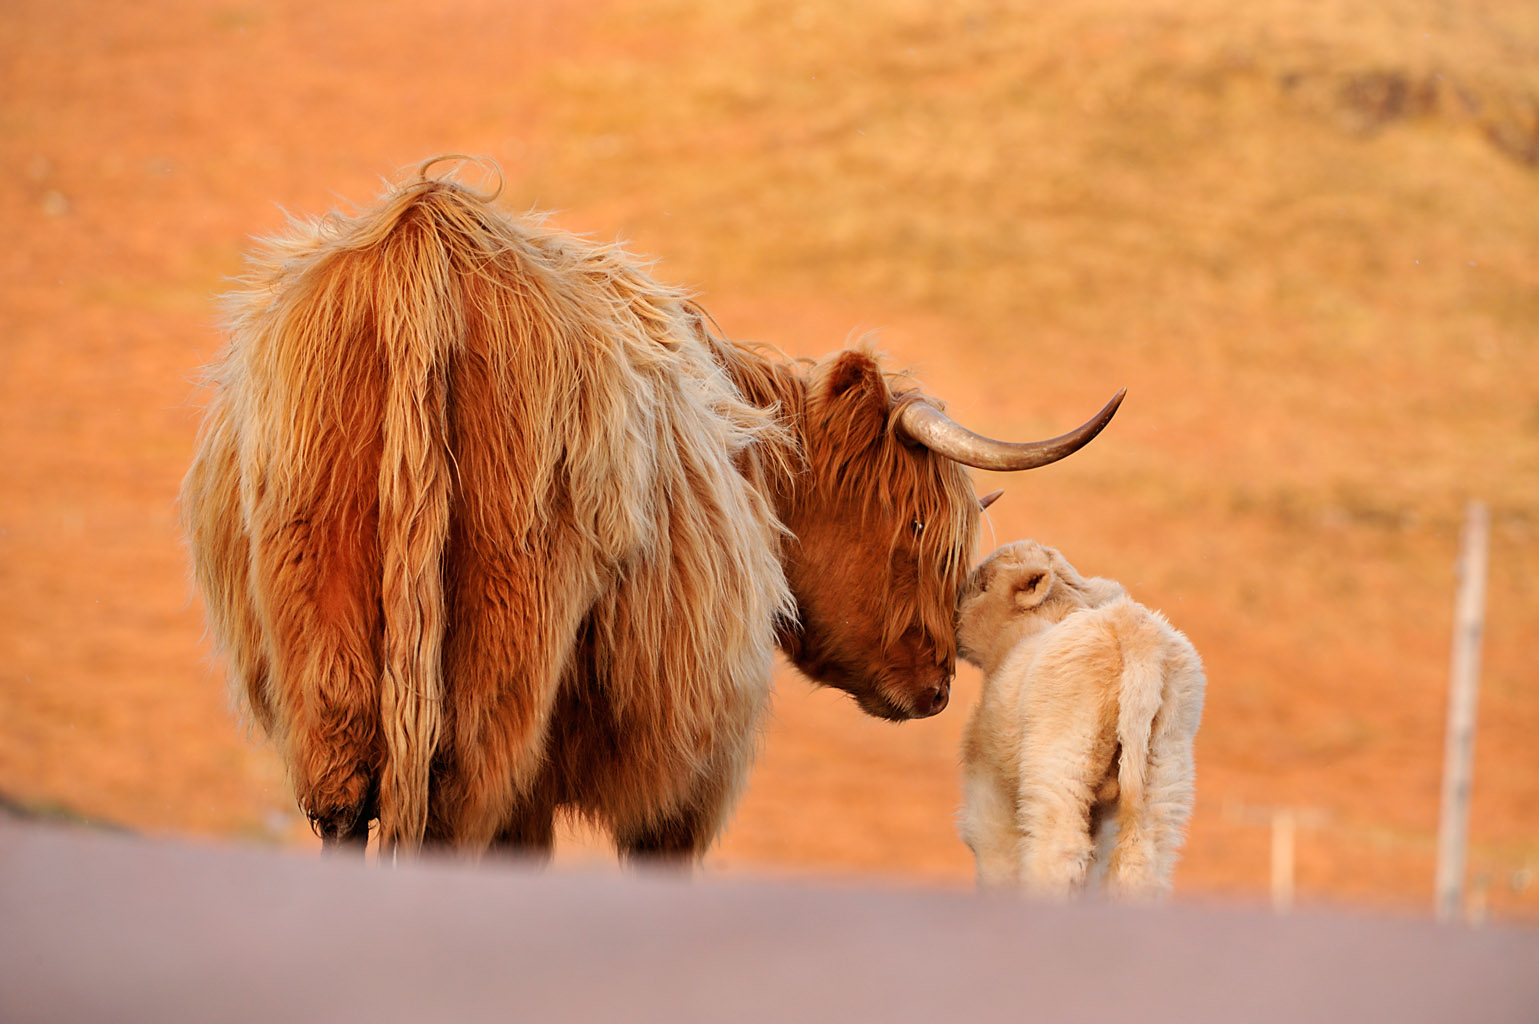 highland cow 0189  PORTFOLIO GALLERY.jpg